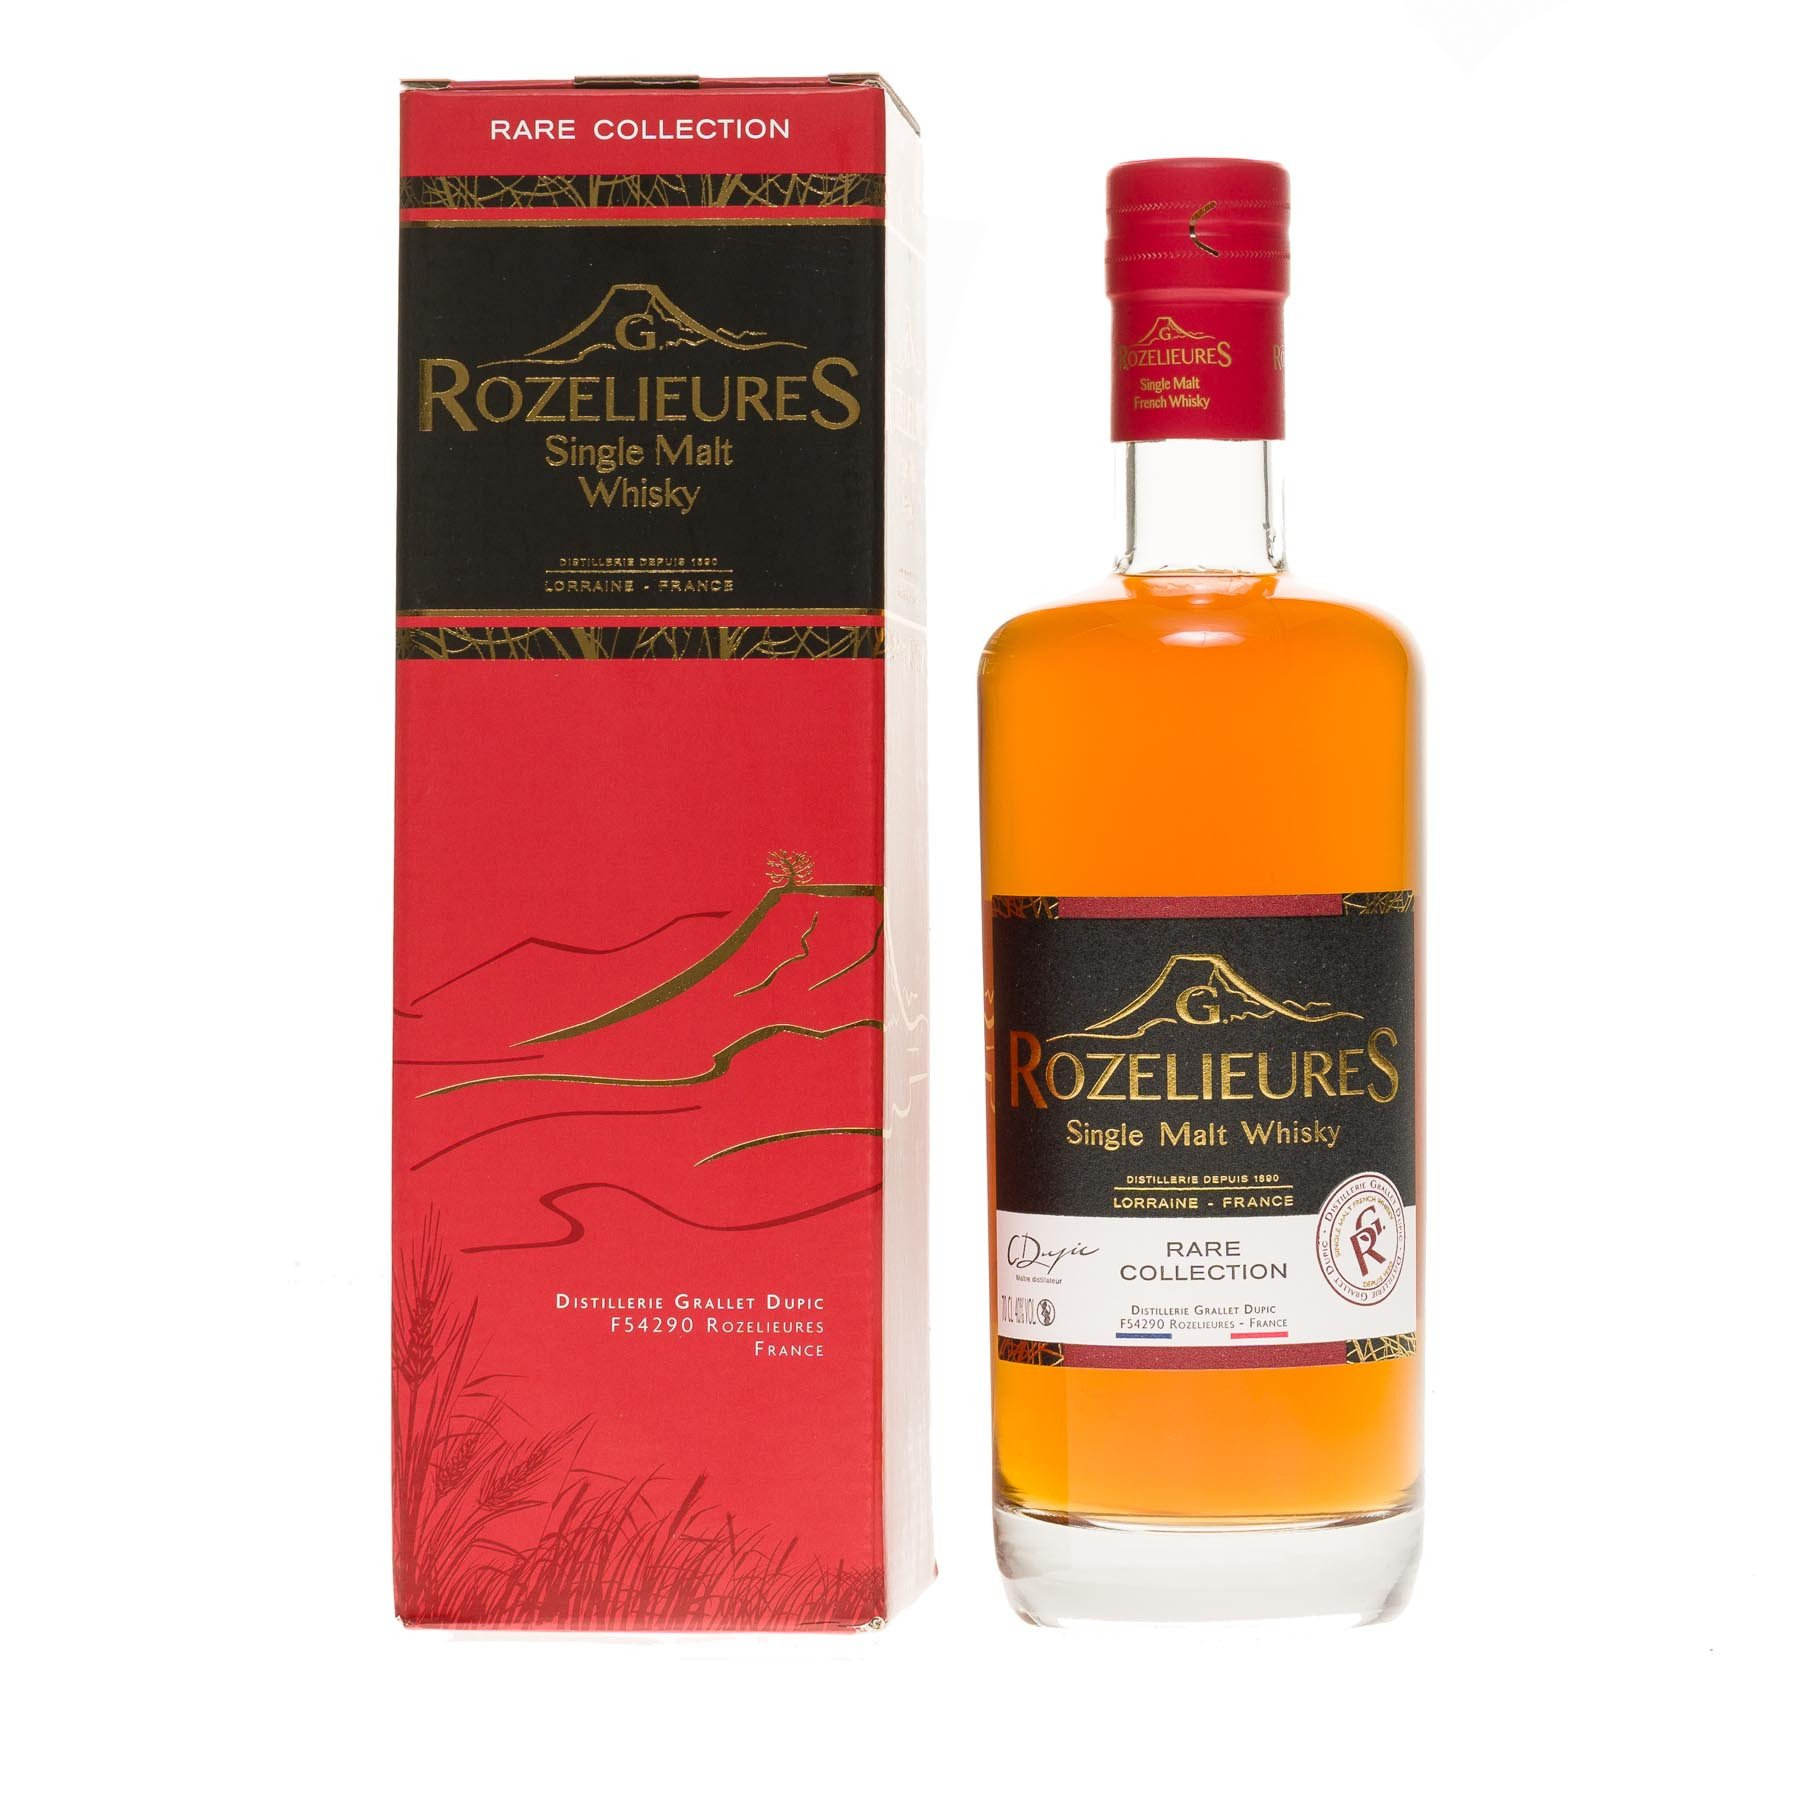 Whisky single malt G.Rozelieures